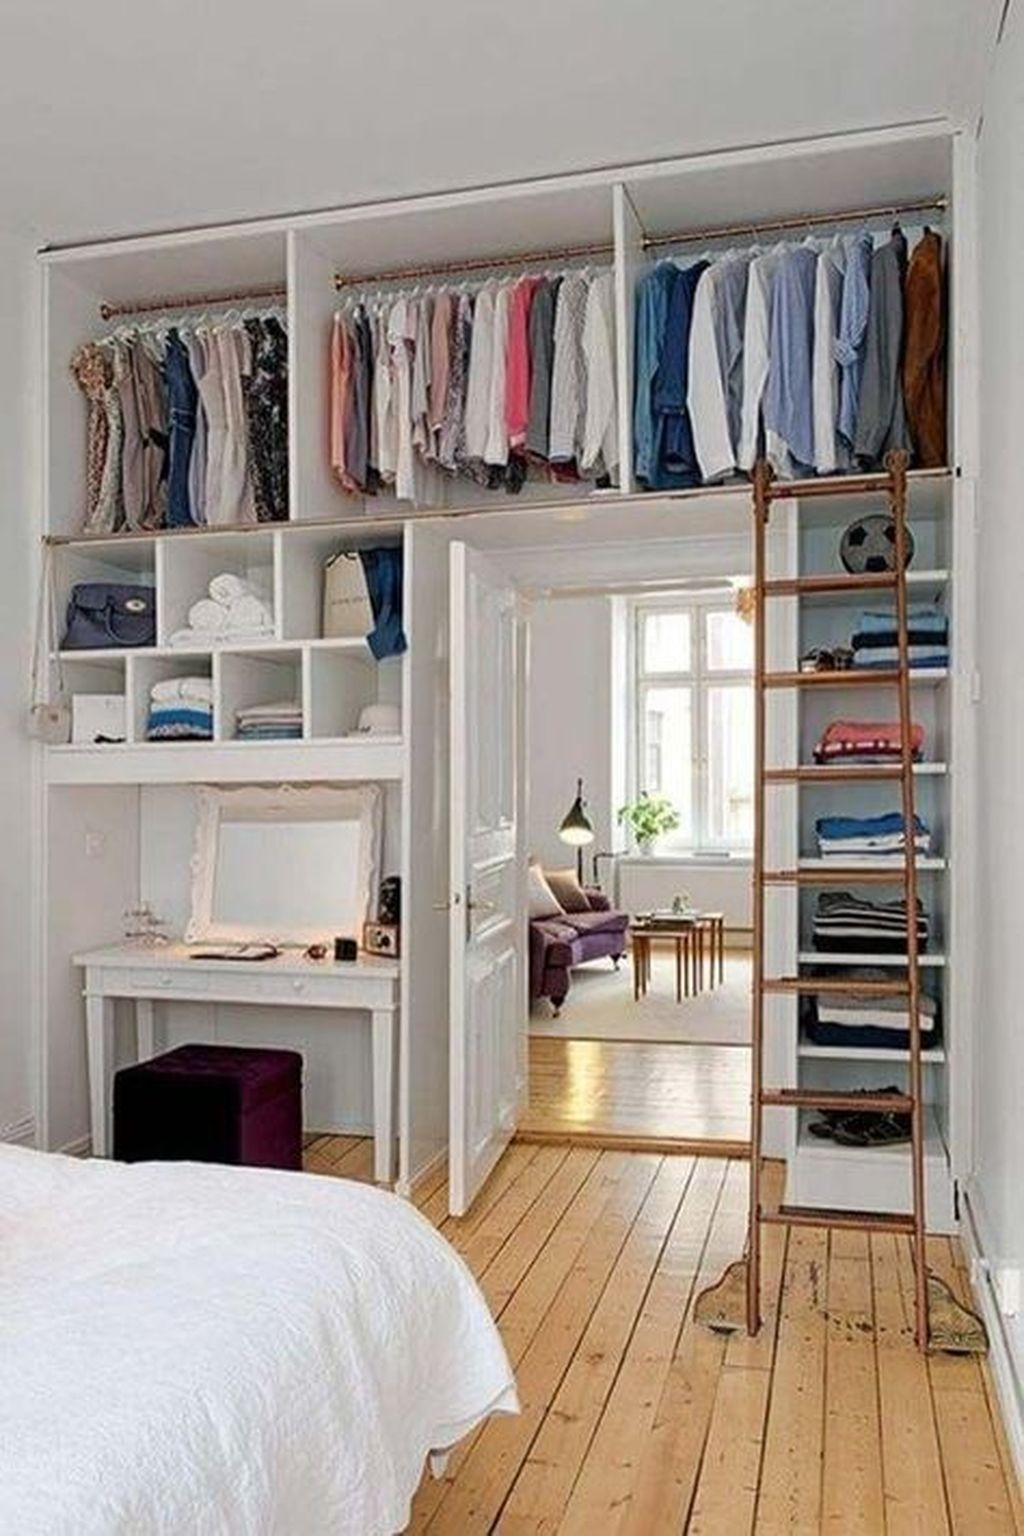 20 Minimalist Bedroom Decorating Ideas For Small Spaces Coodecor Small Apartment Bedrooms Diy Bedroom Storage Small Room Design